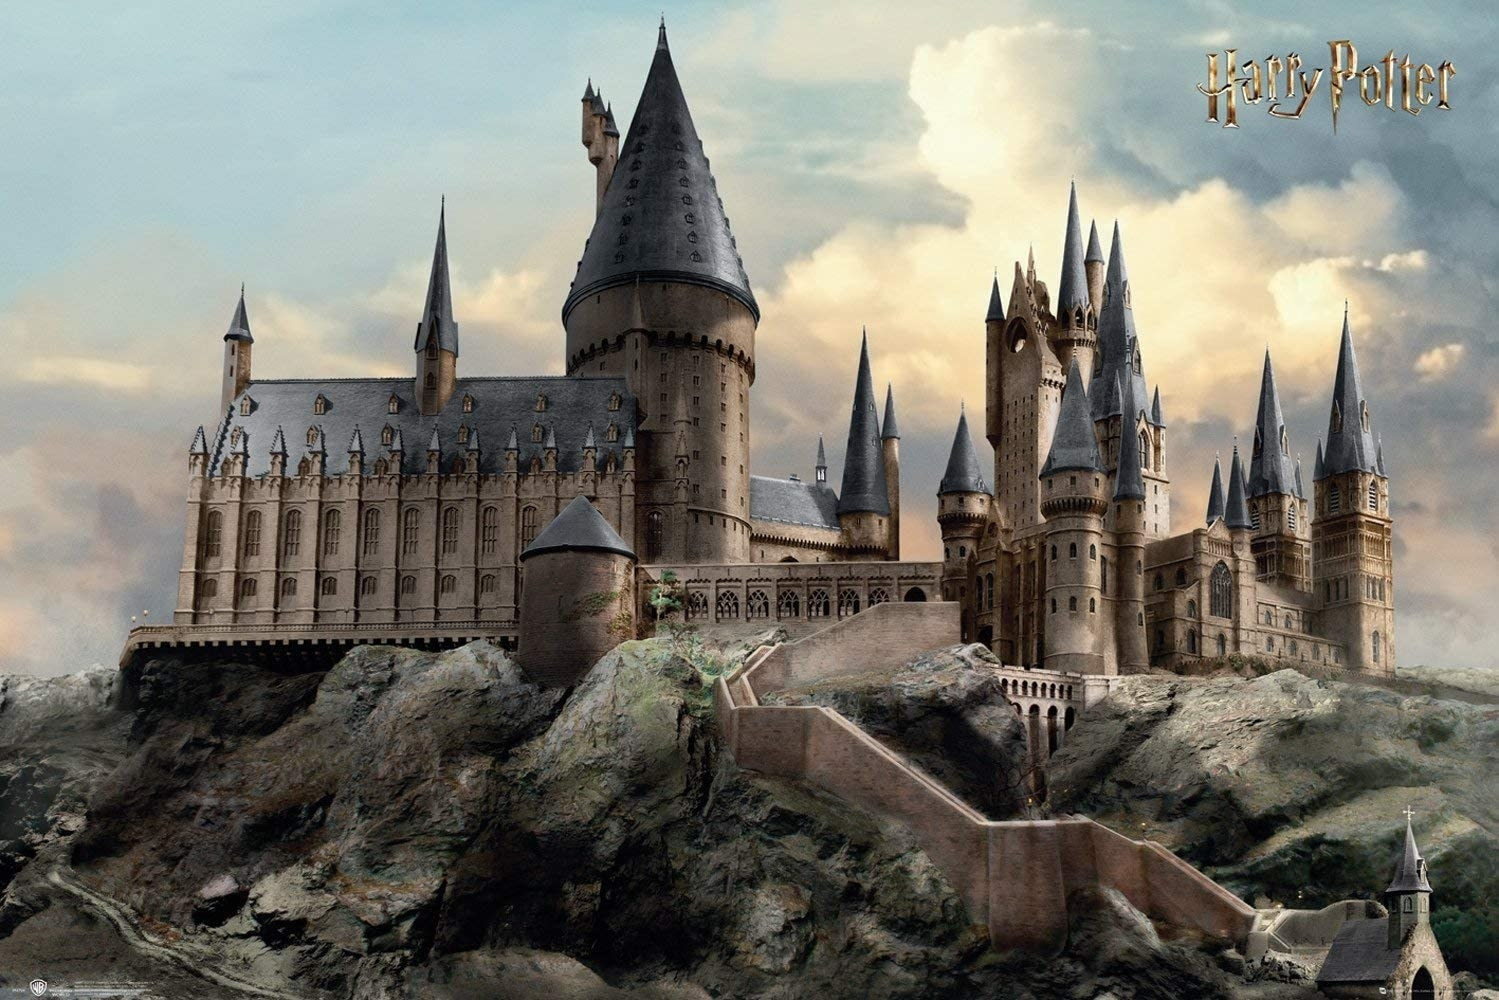 Hogwarts standing tall and strong on the hill